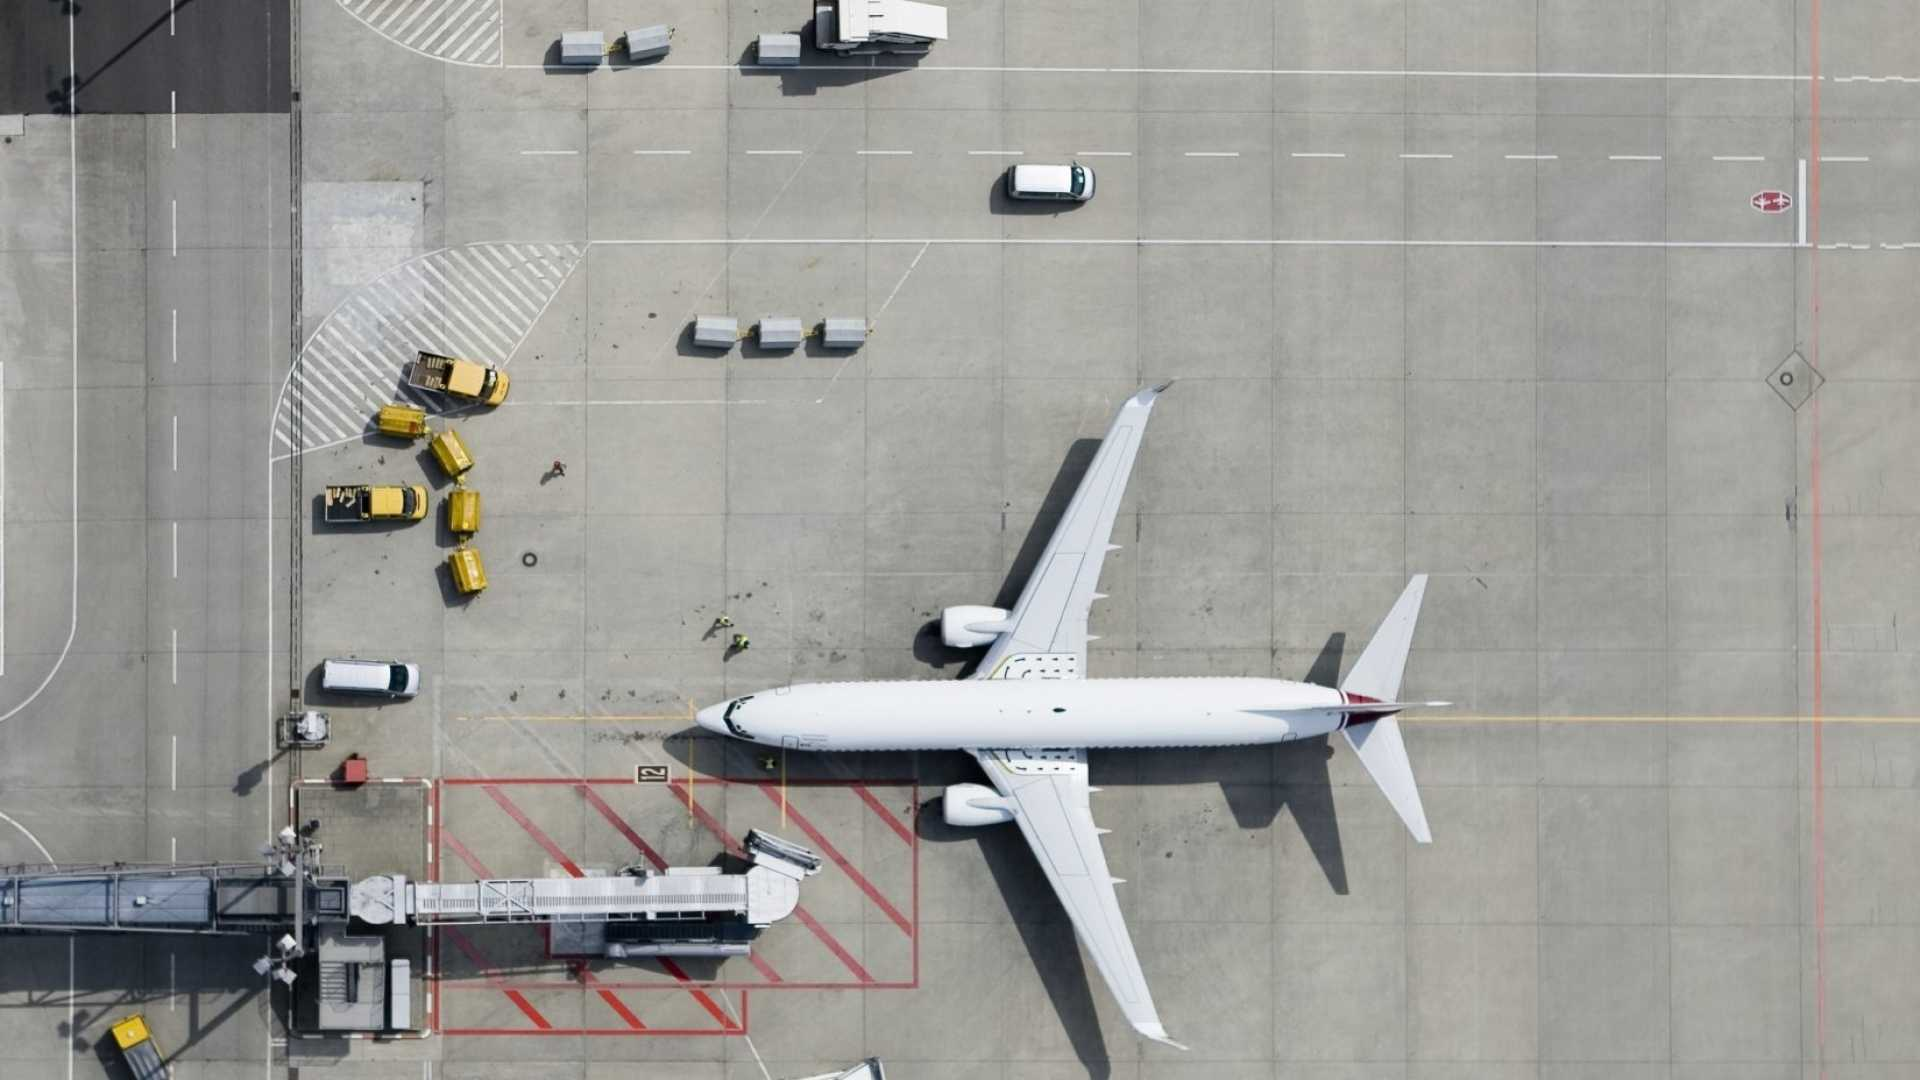 Nervous Flyer? Consider These 7 Facts the Next Time You Travel for Business